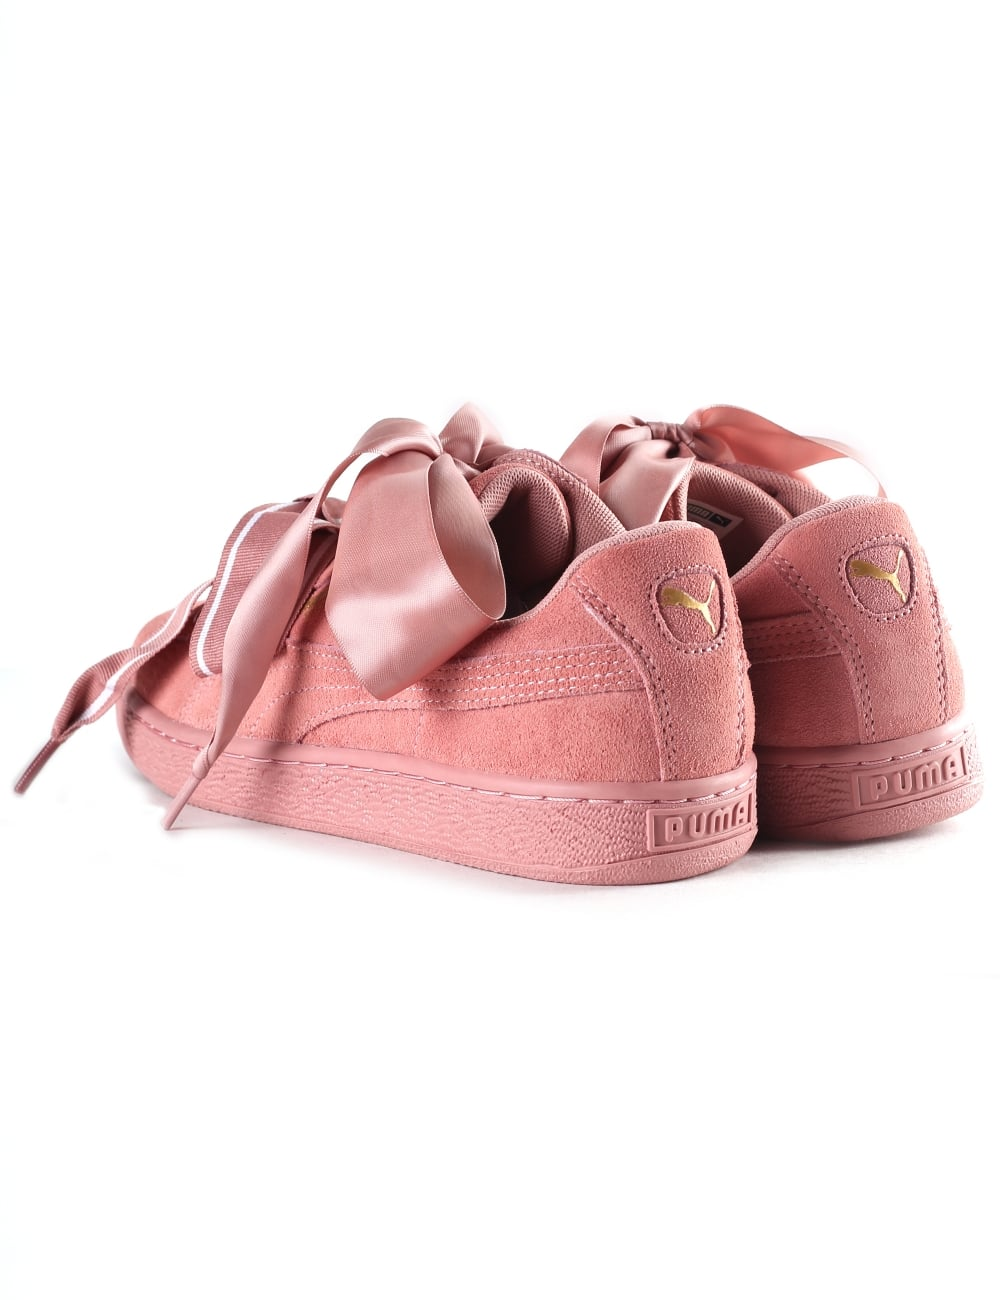 885ad37ff65 Puma Women s Suede Heart Satin ll Trainer